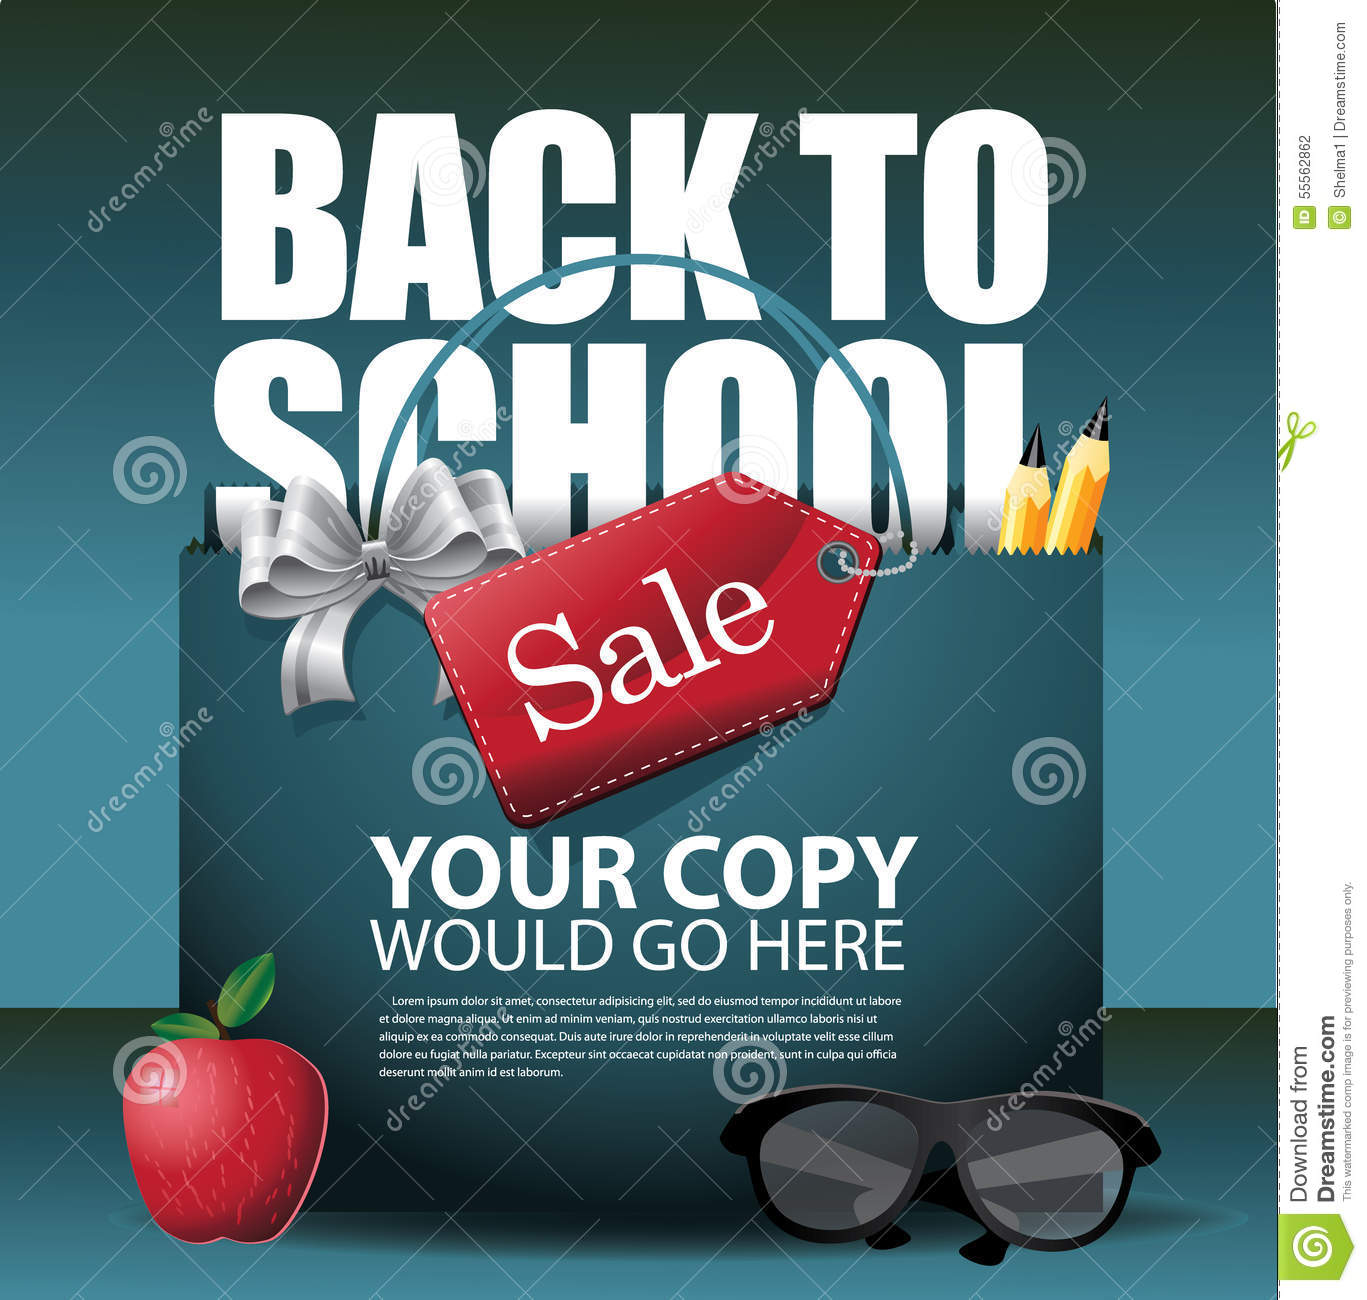 back-to-school-marketing-background-eps-vector-stock-vector-illustration-greeting-card-ad-promotion-poster-flier-blog-article-55562862.jpg